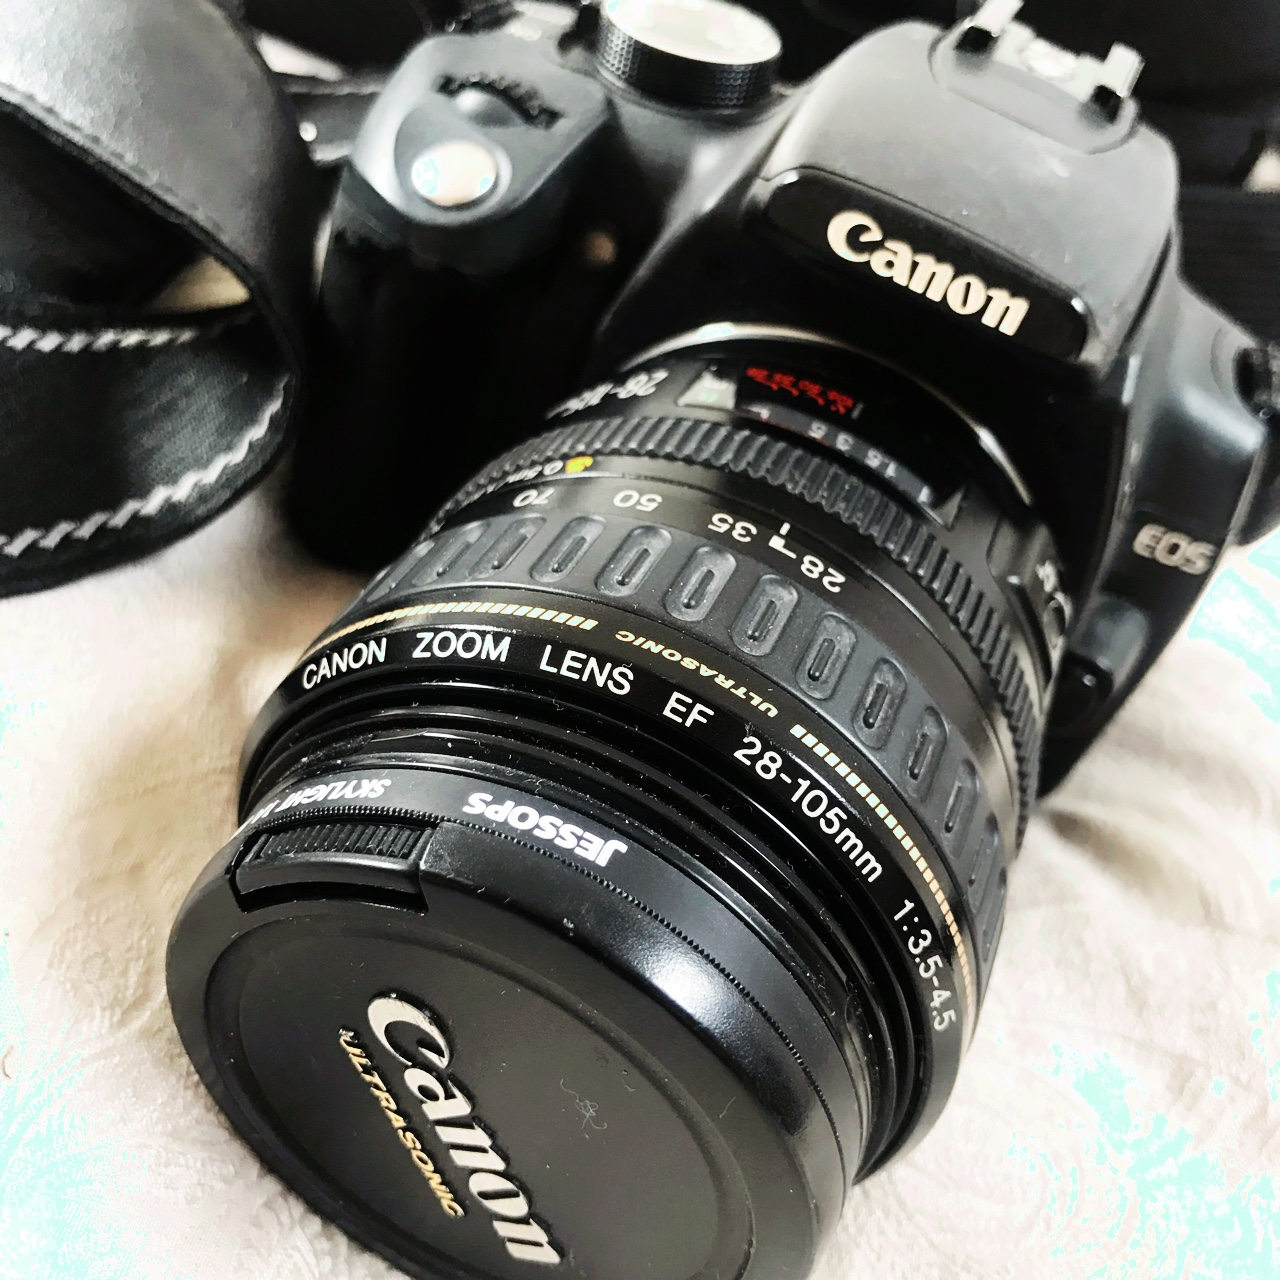 Canon DS126071  Everything perfect with accessories